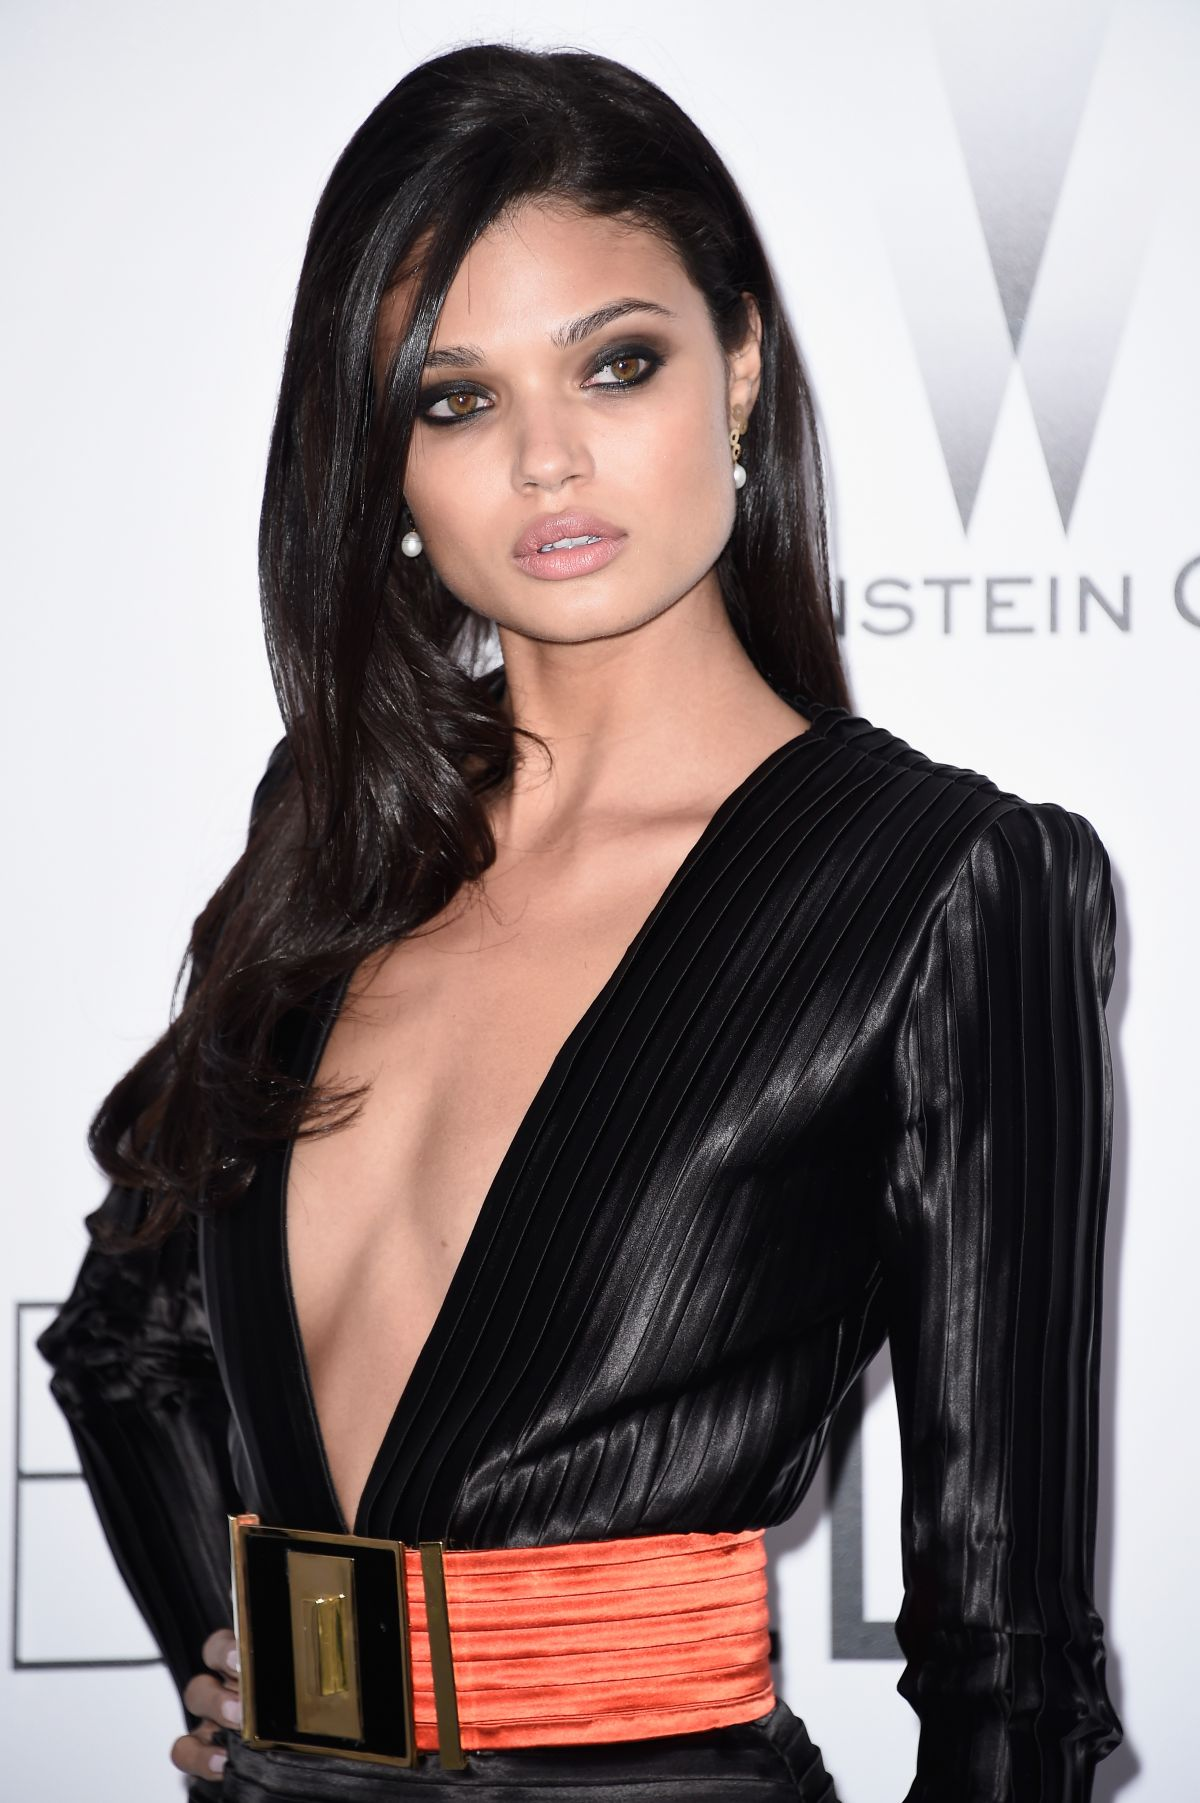 DANIELA BRAGA at Amfar's 2015 Cinema Against Aids Gala in Cap d'Antibes